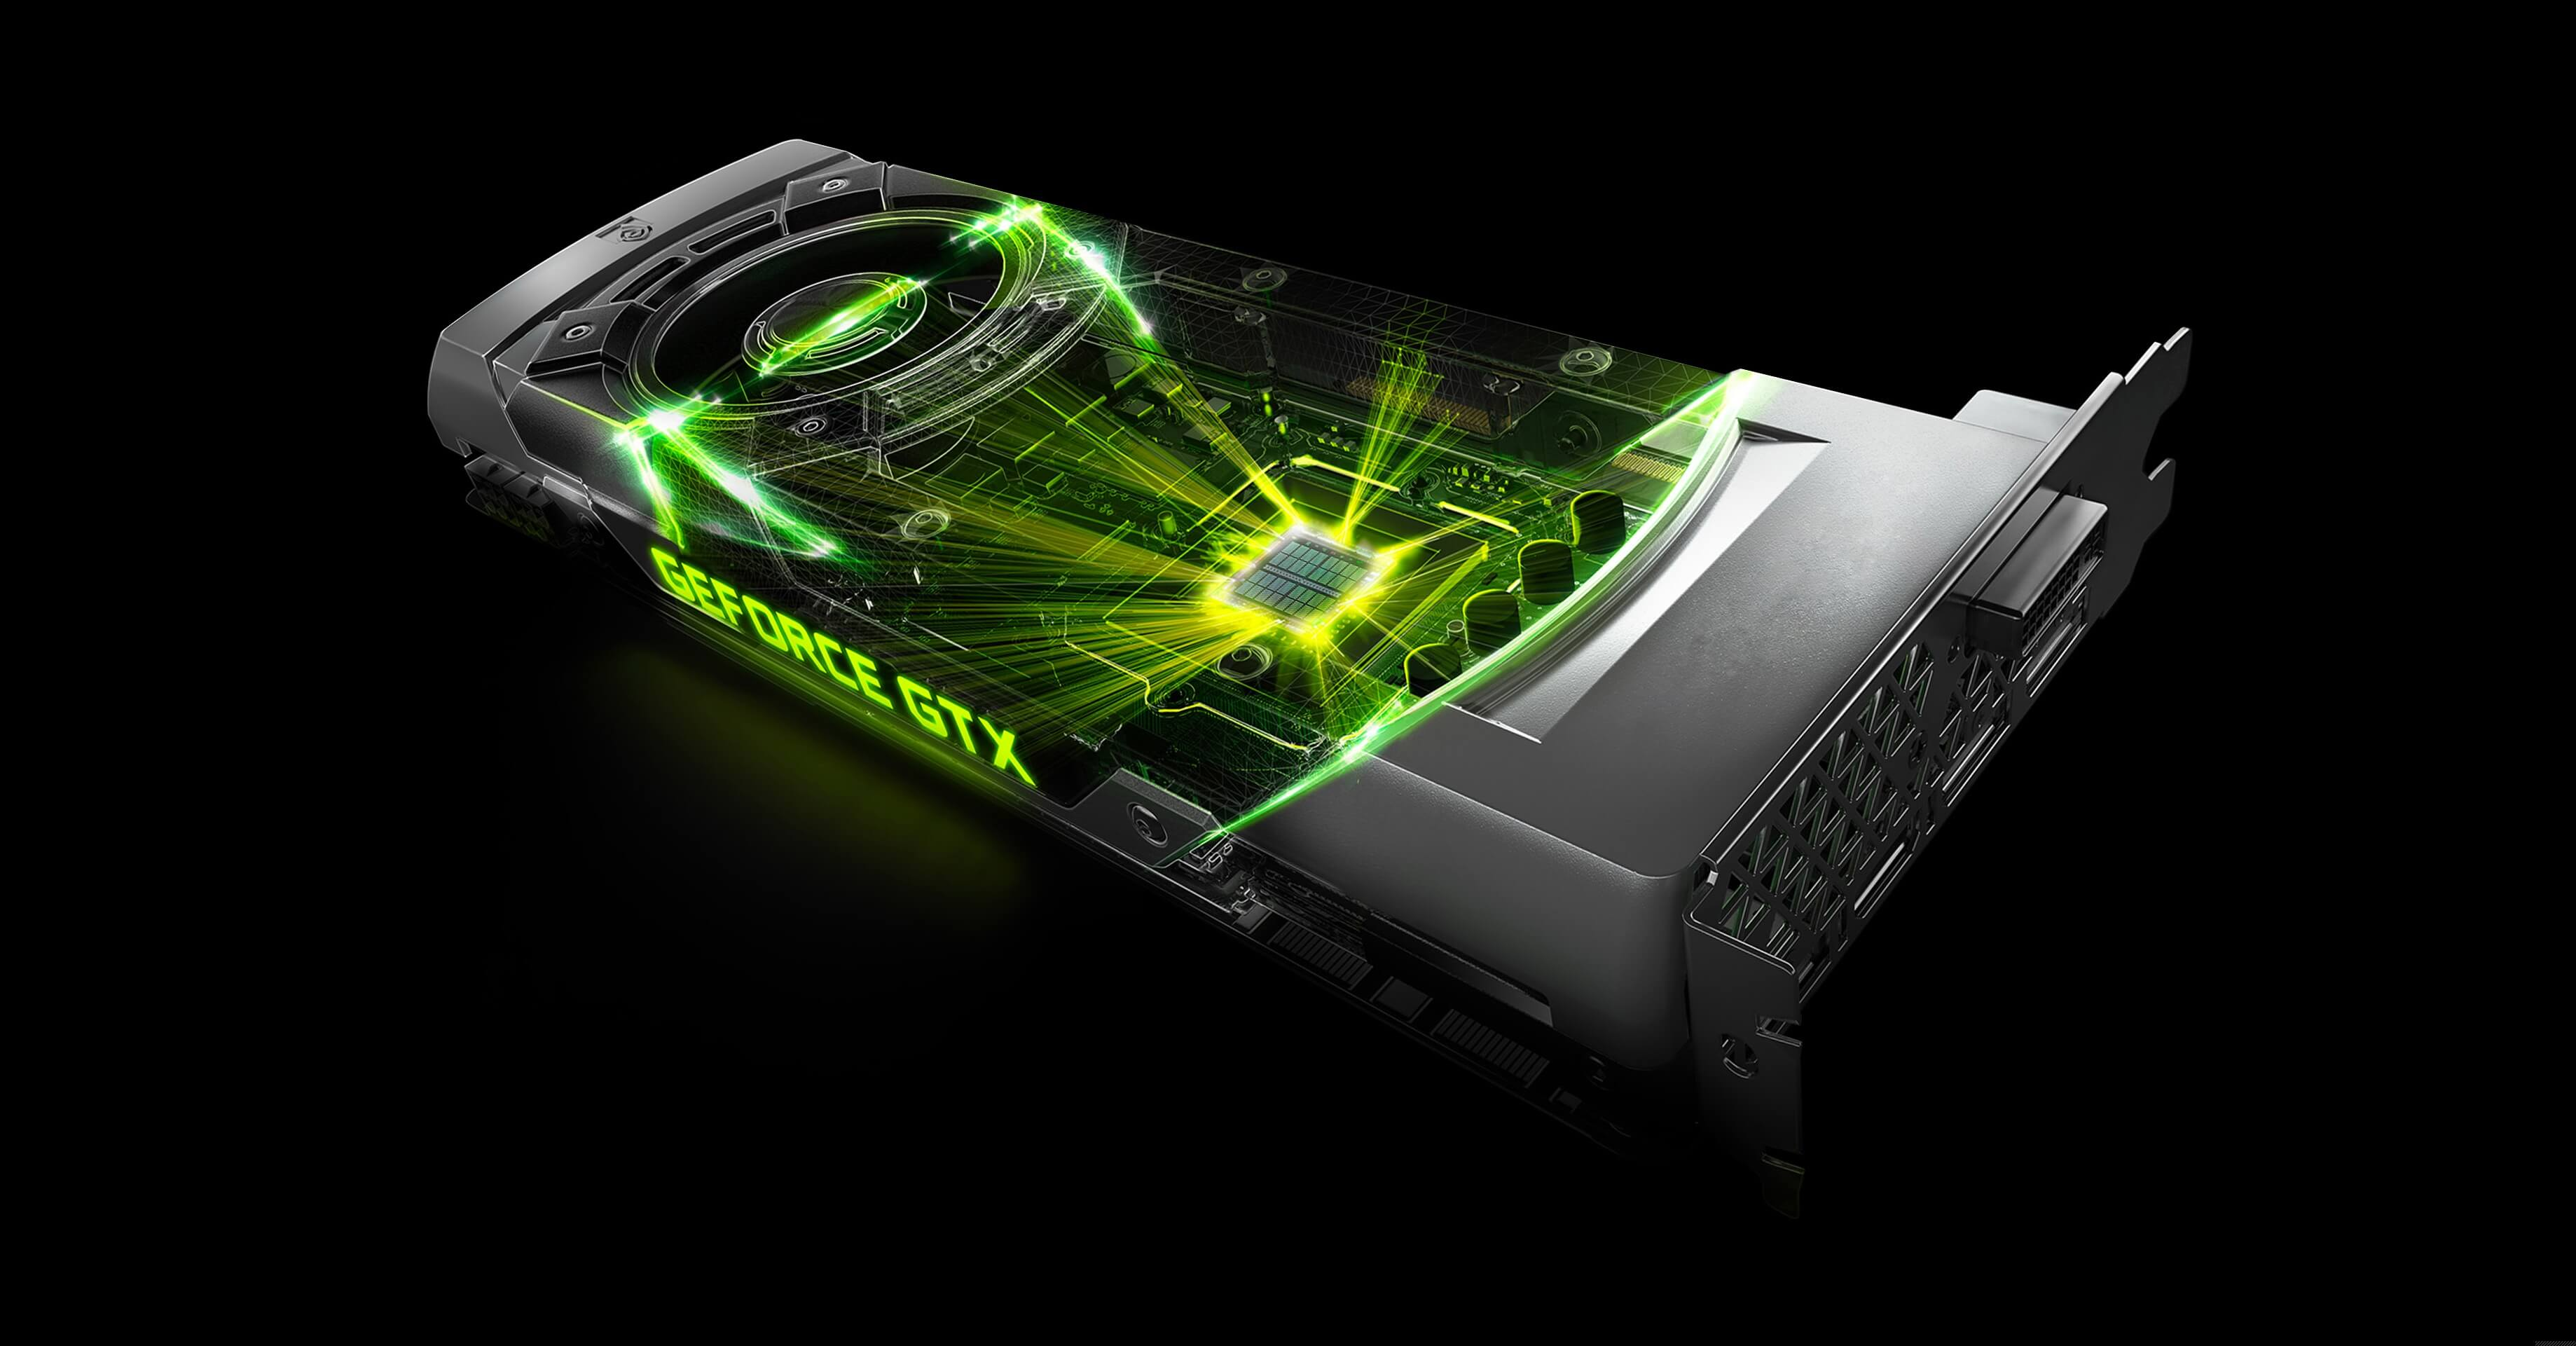 Five Years Later: Revisiting the GeForce GTX 970 - TechSpot